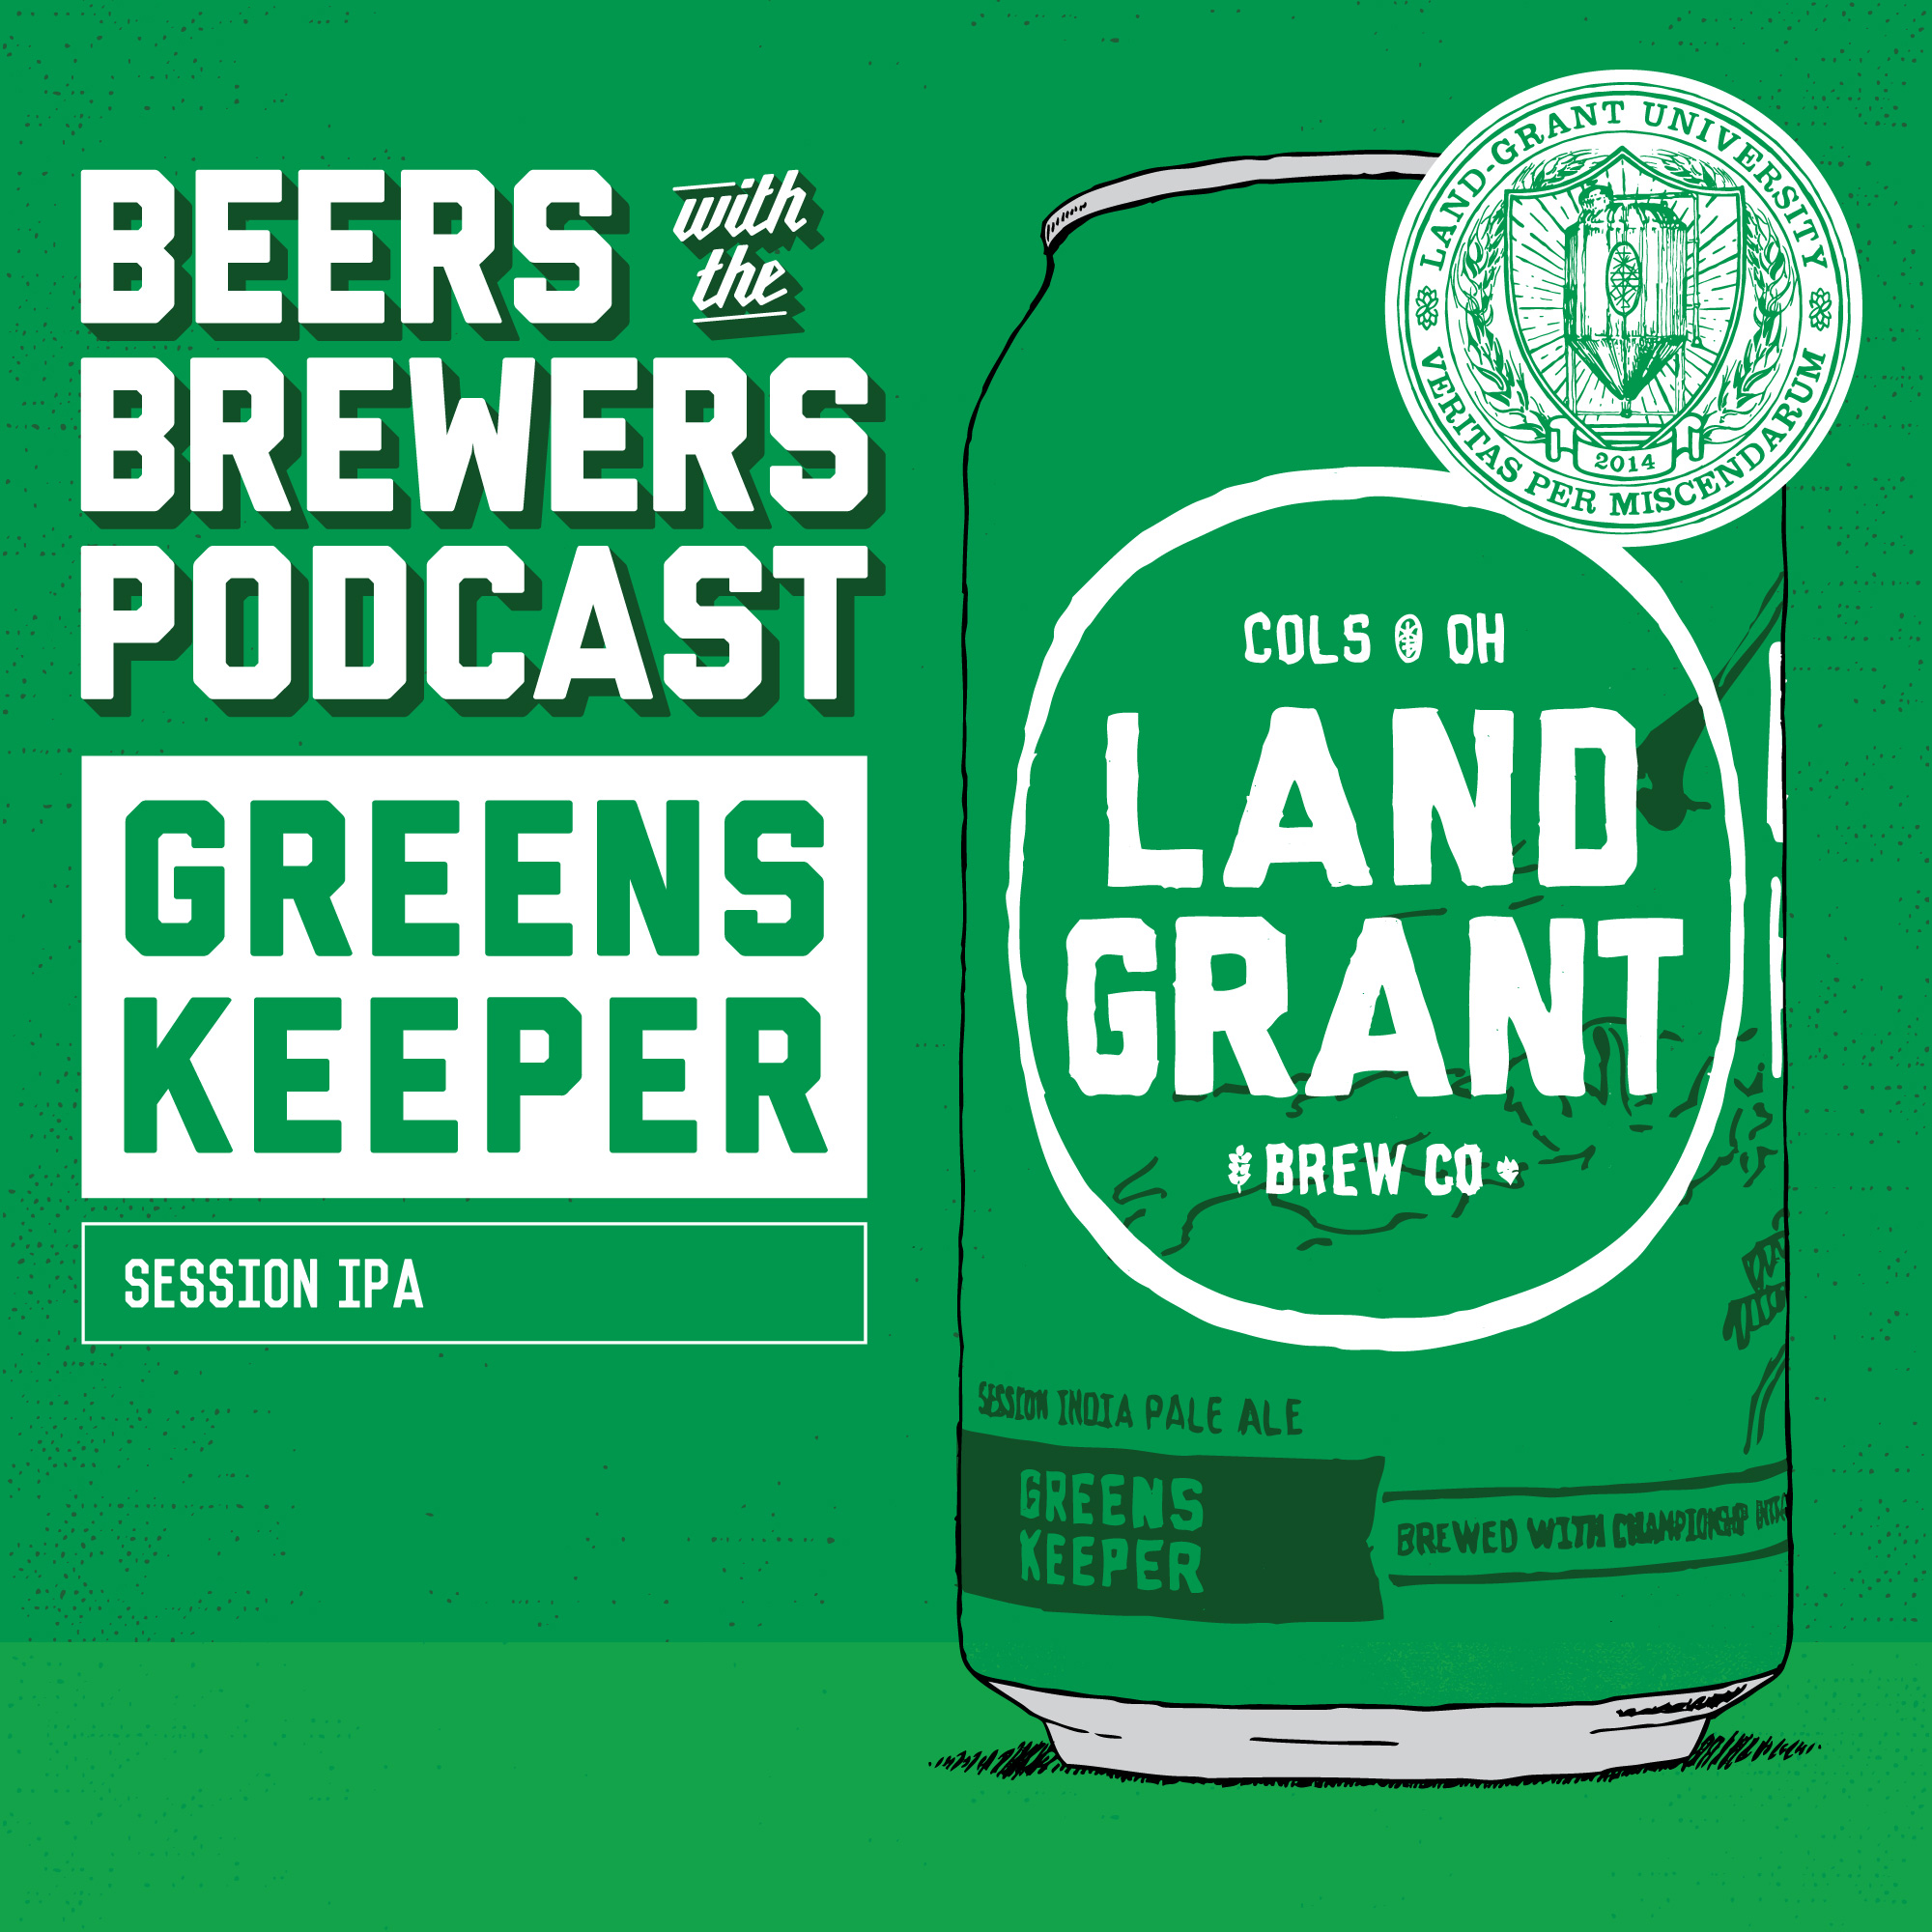 Greenskeeper - Session IPA